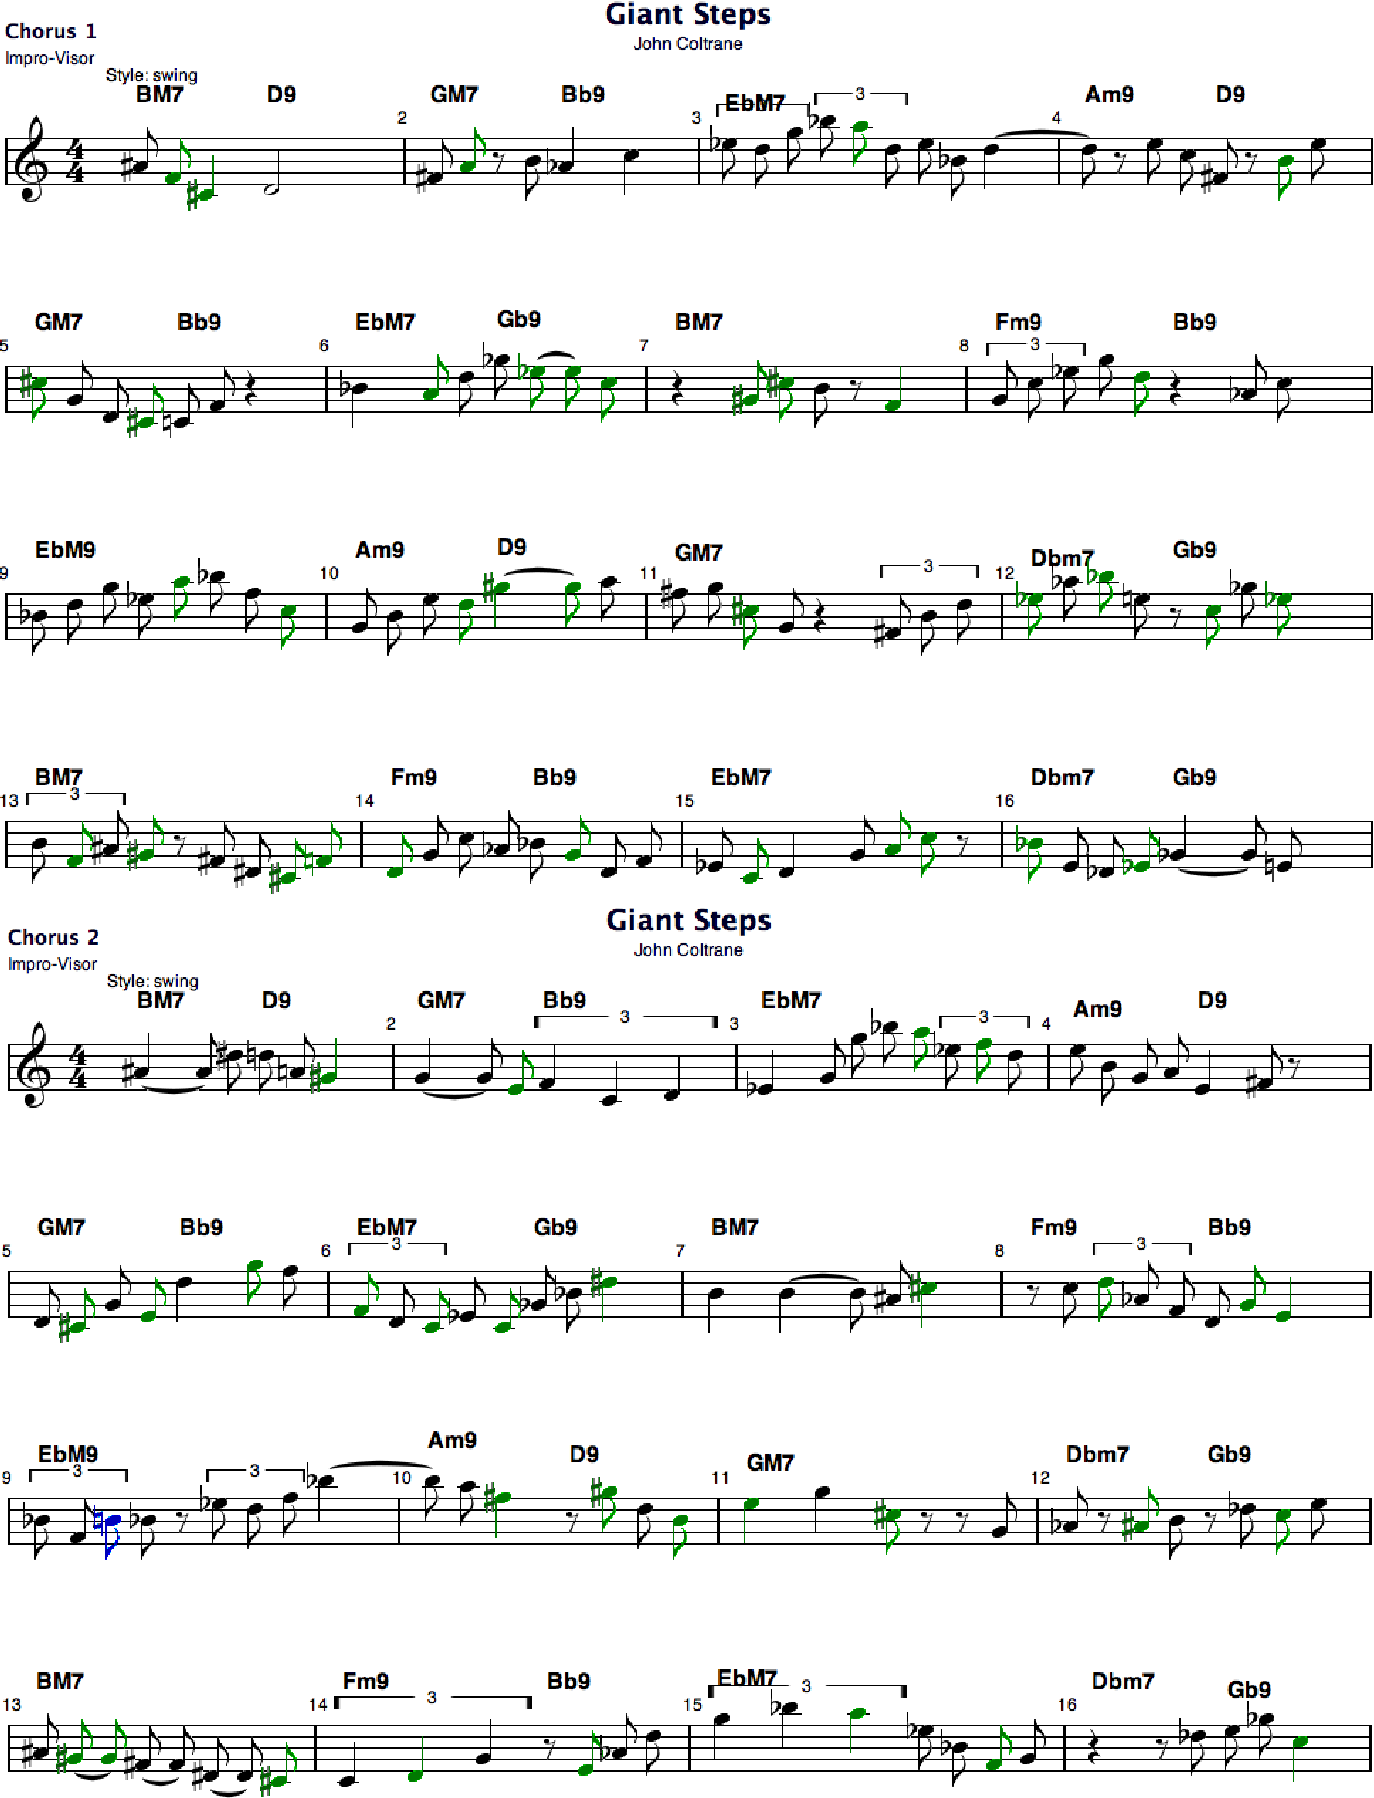 Fig. 7. Typical choruses generated on John Coltrane's Giant Steps